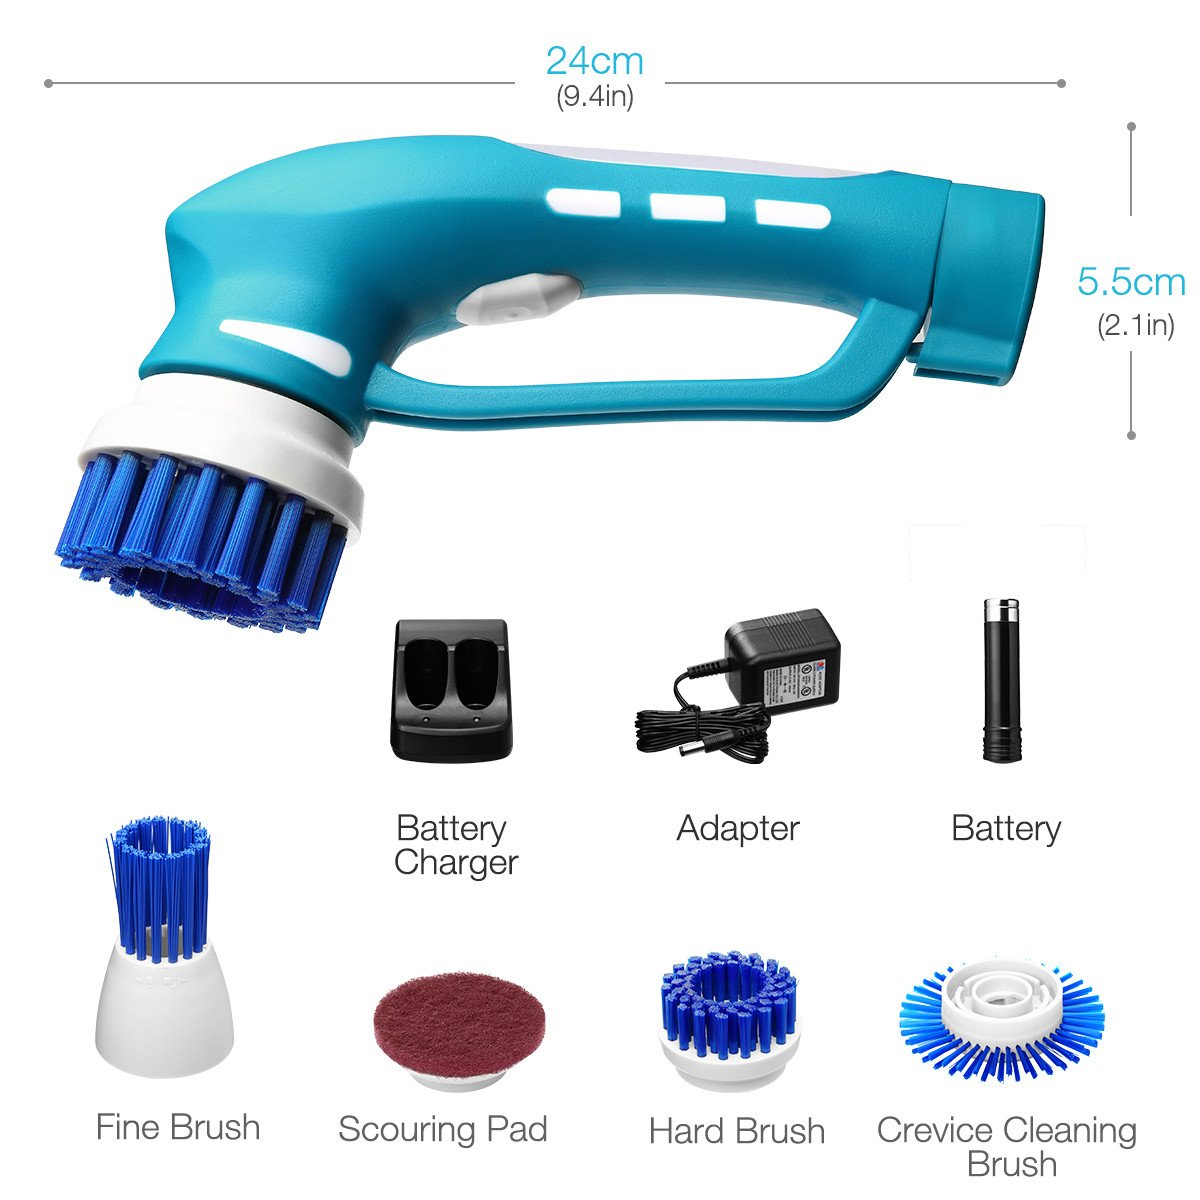 Housmile Electric Spin Scrubber, Floor Scrubber Cordless Tub and Tile Scrubber with 3 Replaceable Cleaning Scrubber Brush Heads 1 Scouring Pad, for Bathroom, Floor, Wall and Kitchen by Housmile (Image #4)